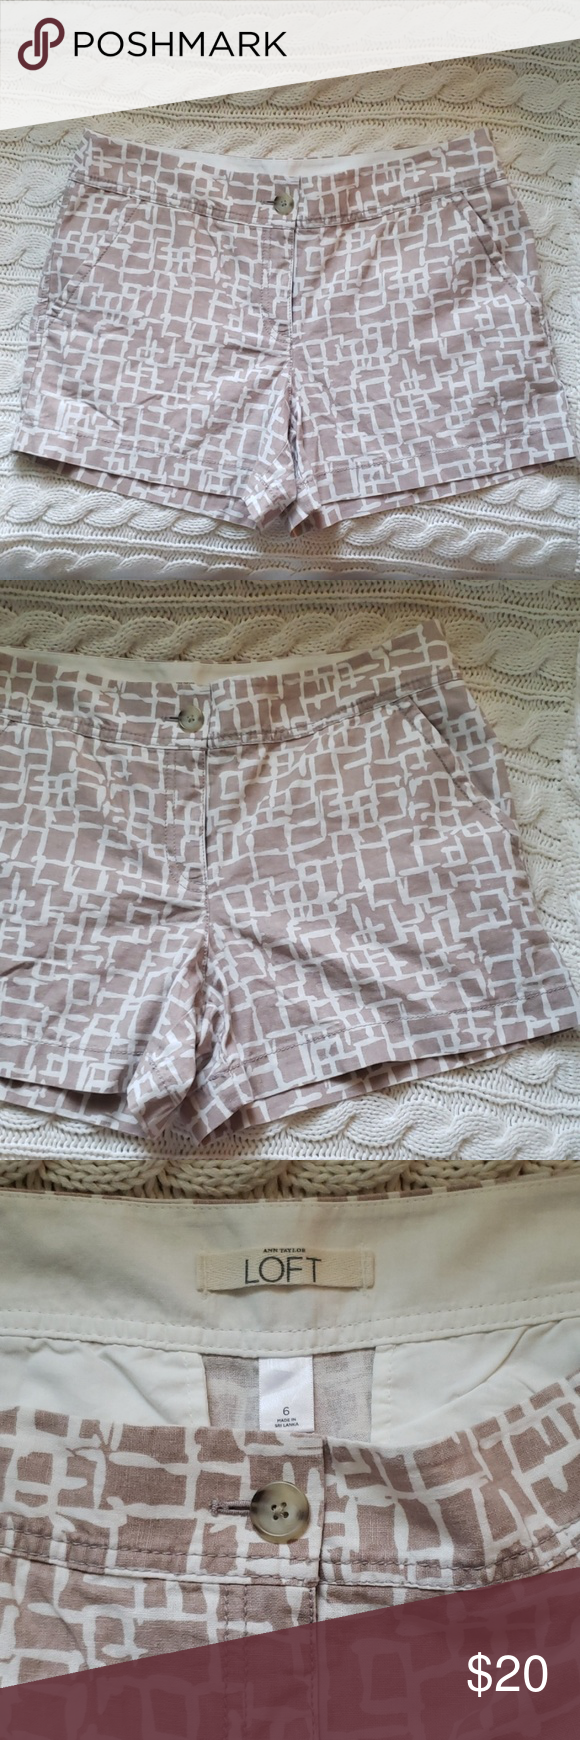 50% off bundles! Loft brown & off-white shorts New with tags light brown and off-white geometric print linen/cotton blend shorts from the Loft in women's size 6. LOFT Shorts #loftclothes